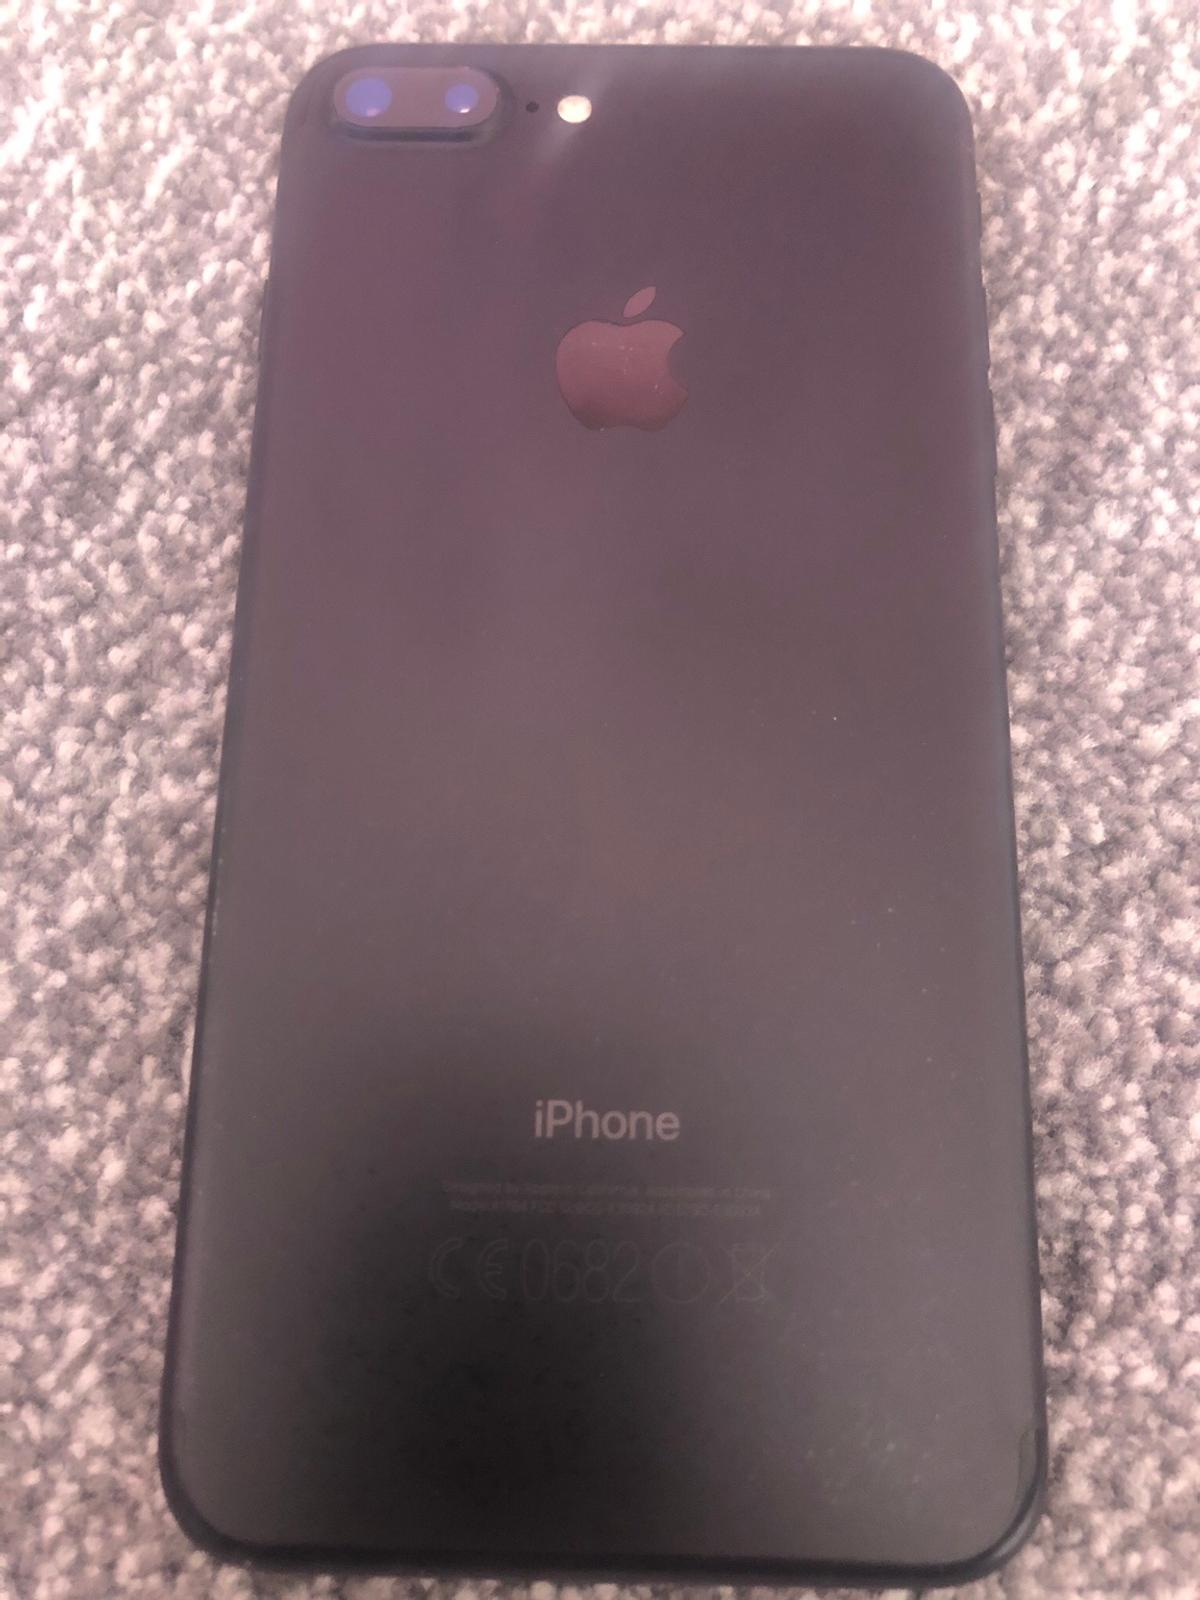 Has a few scratches on screen Includes brand new unopened ear phones, charger and box Unlocked